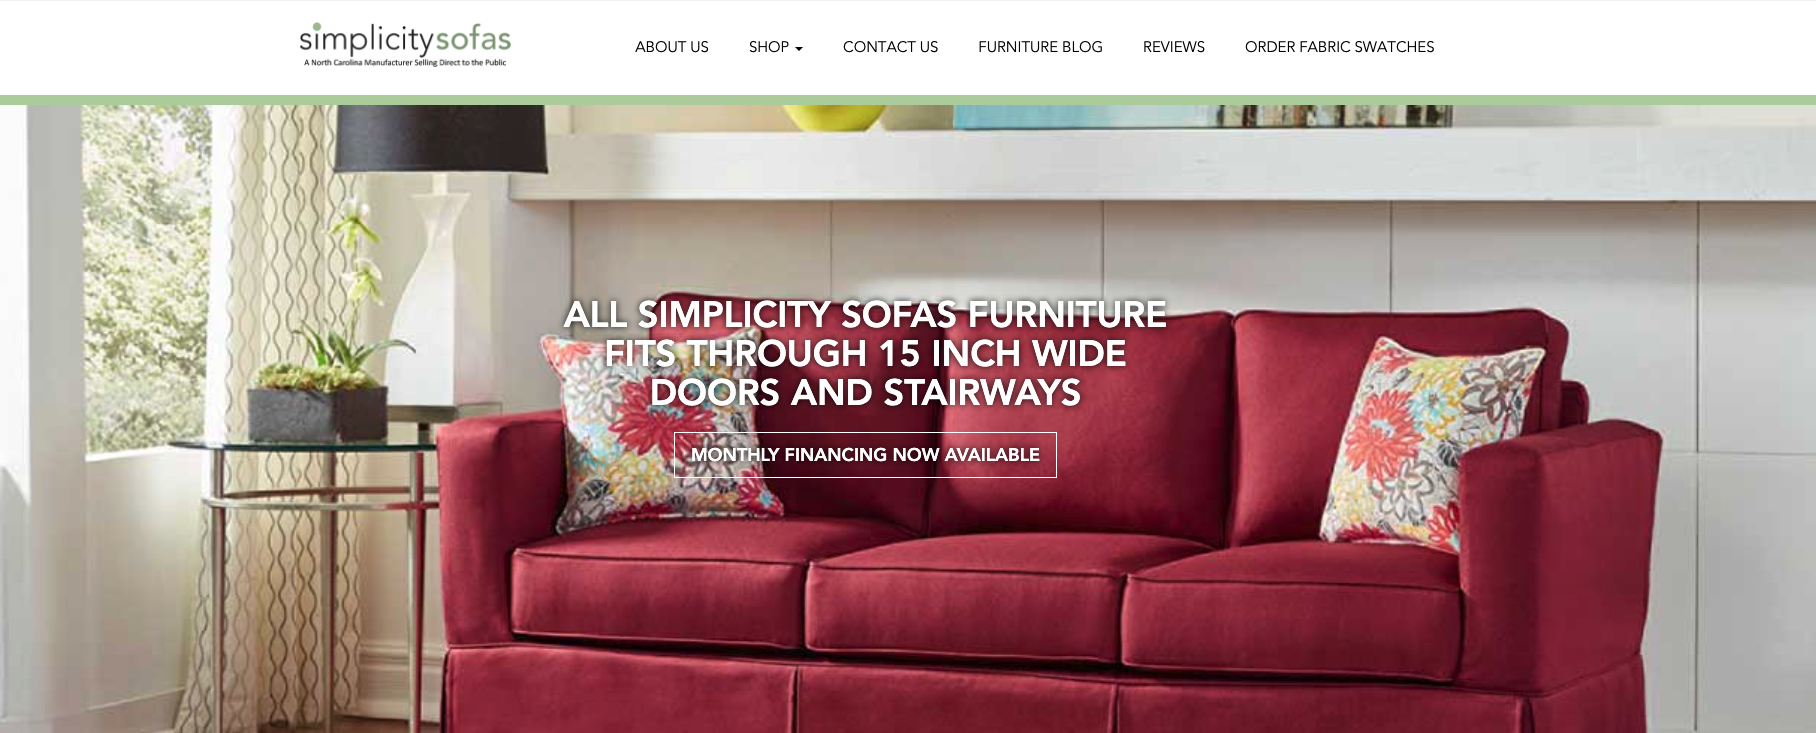 homepage of simplicity sofas